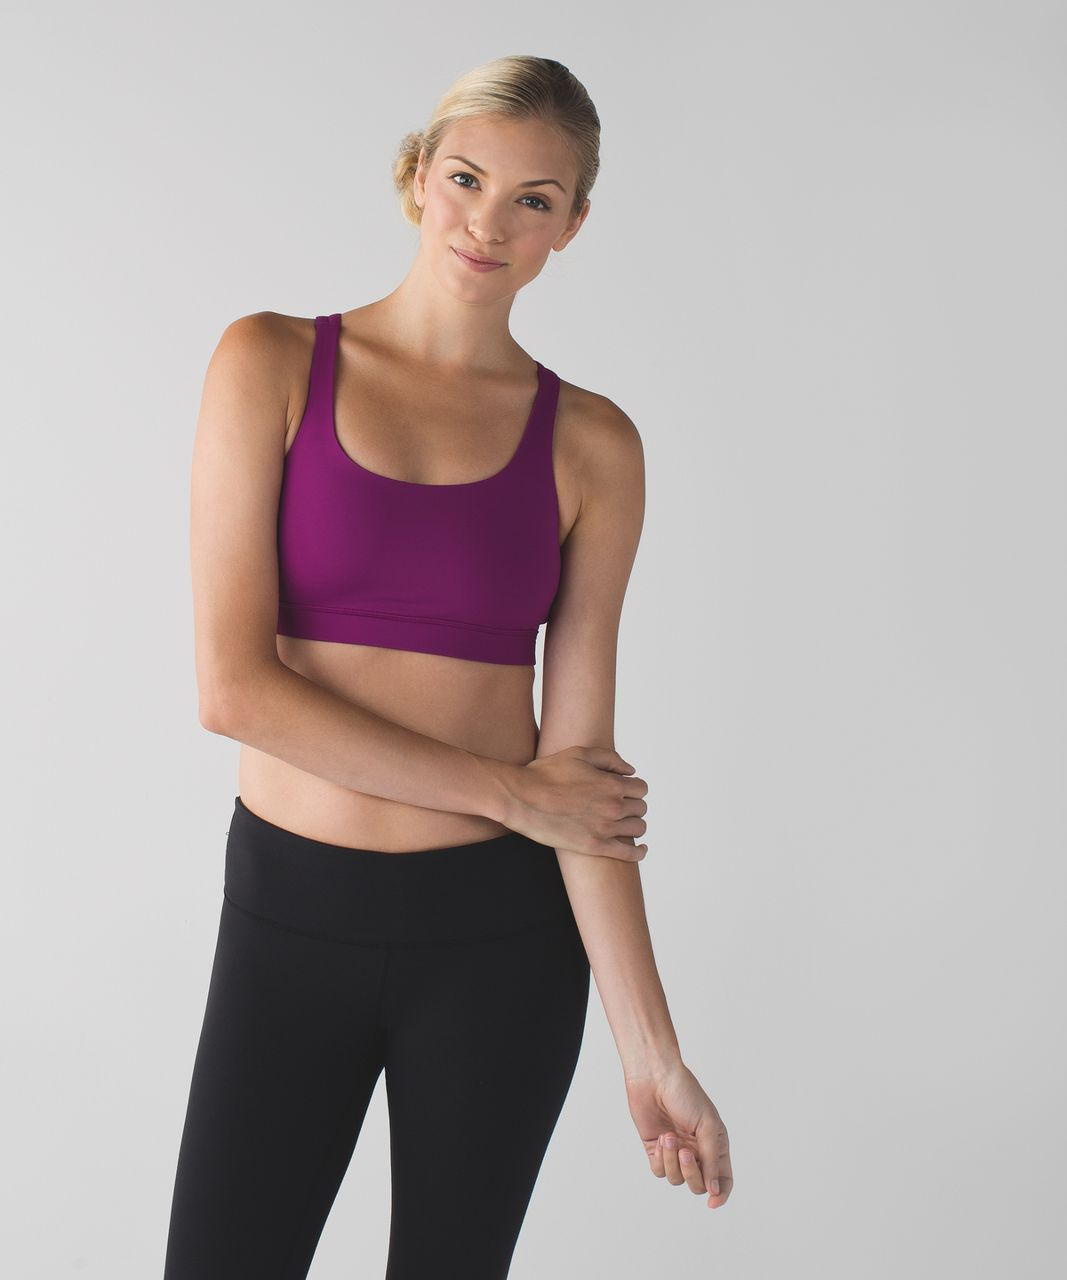 Lululemon Energy Bra - Regal Plum